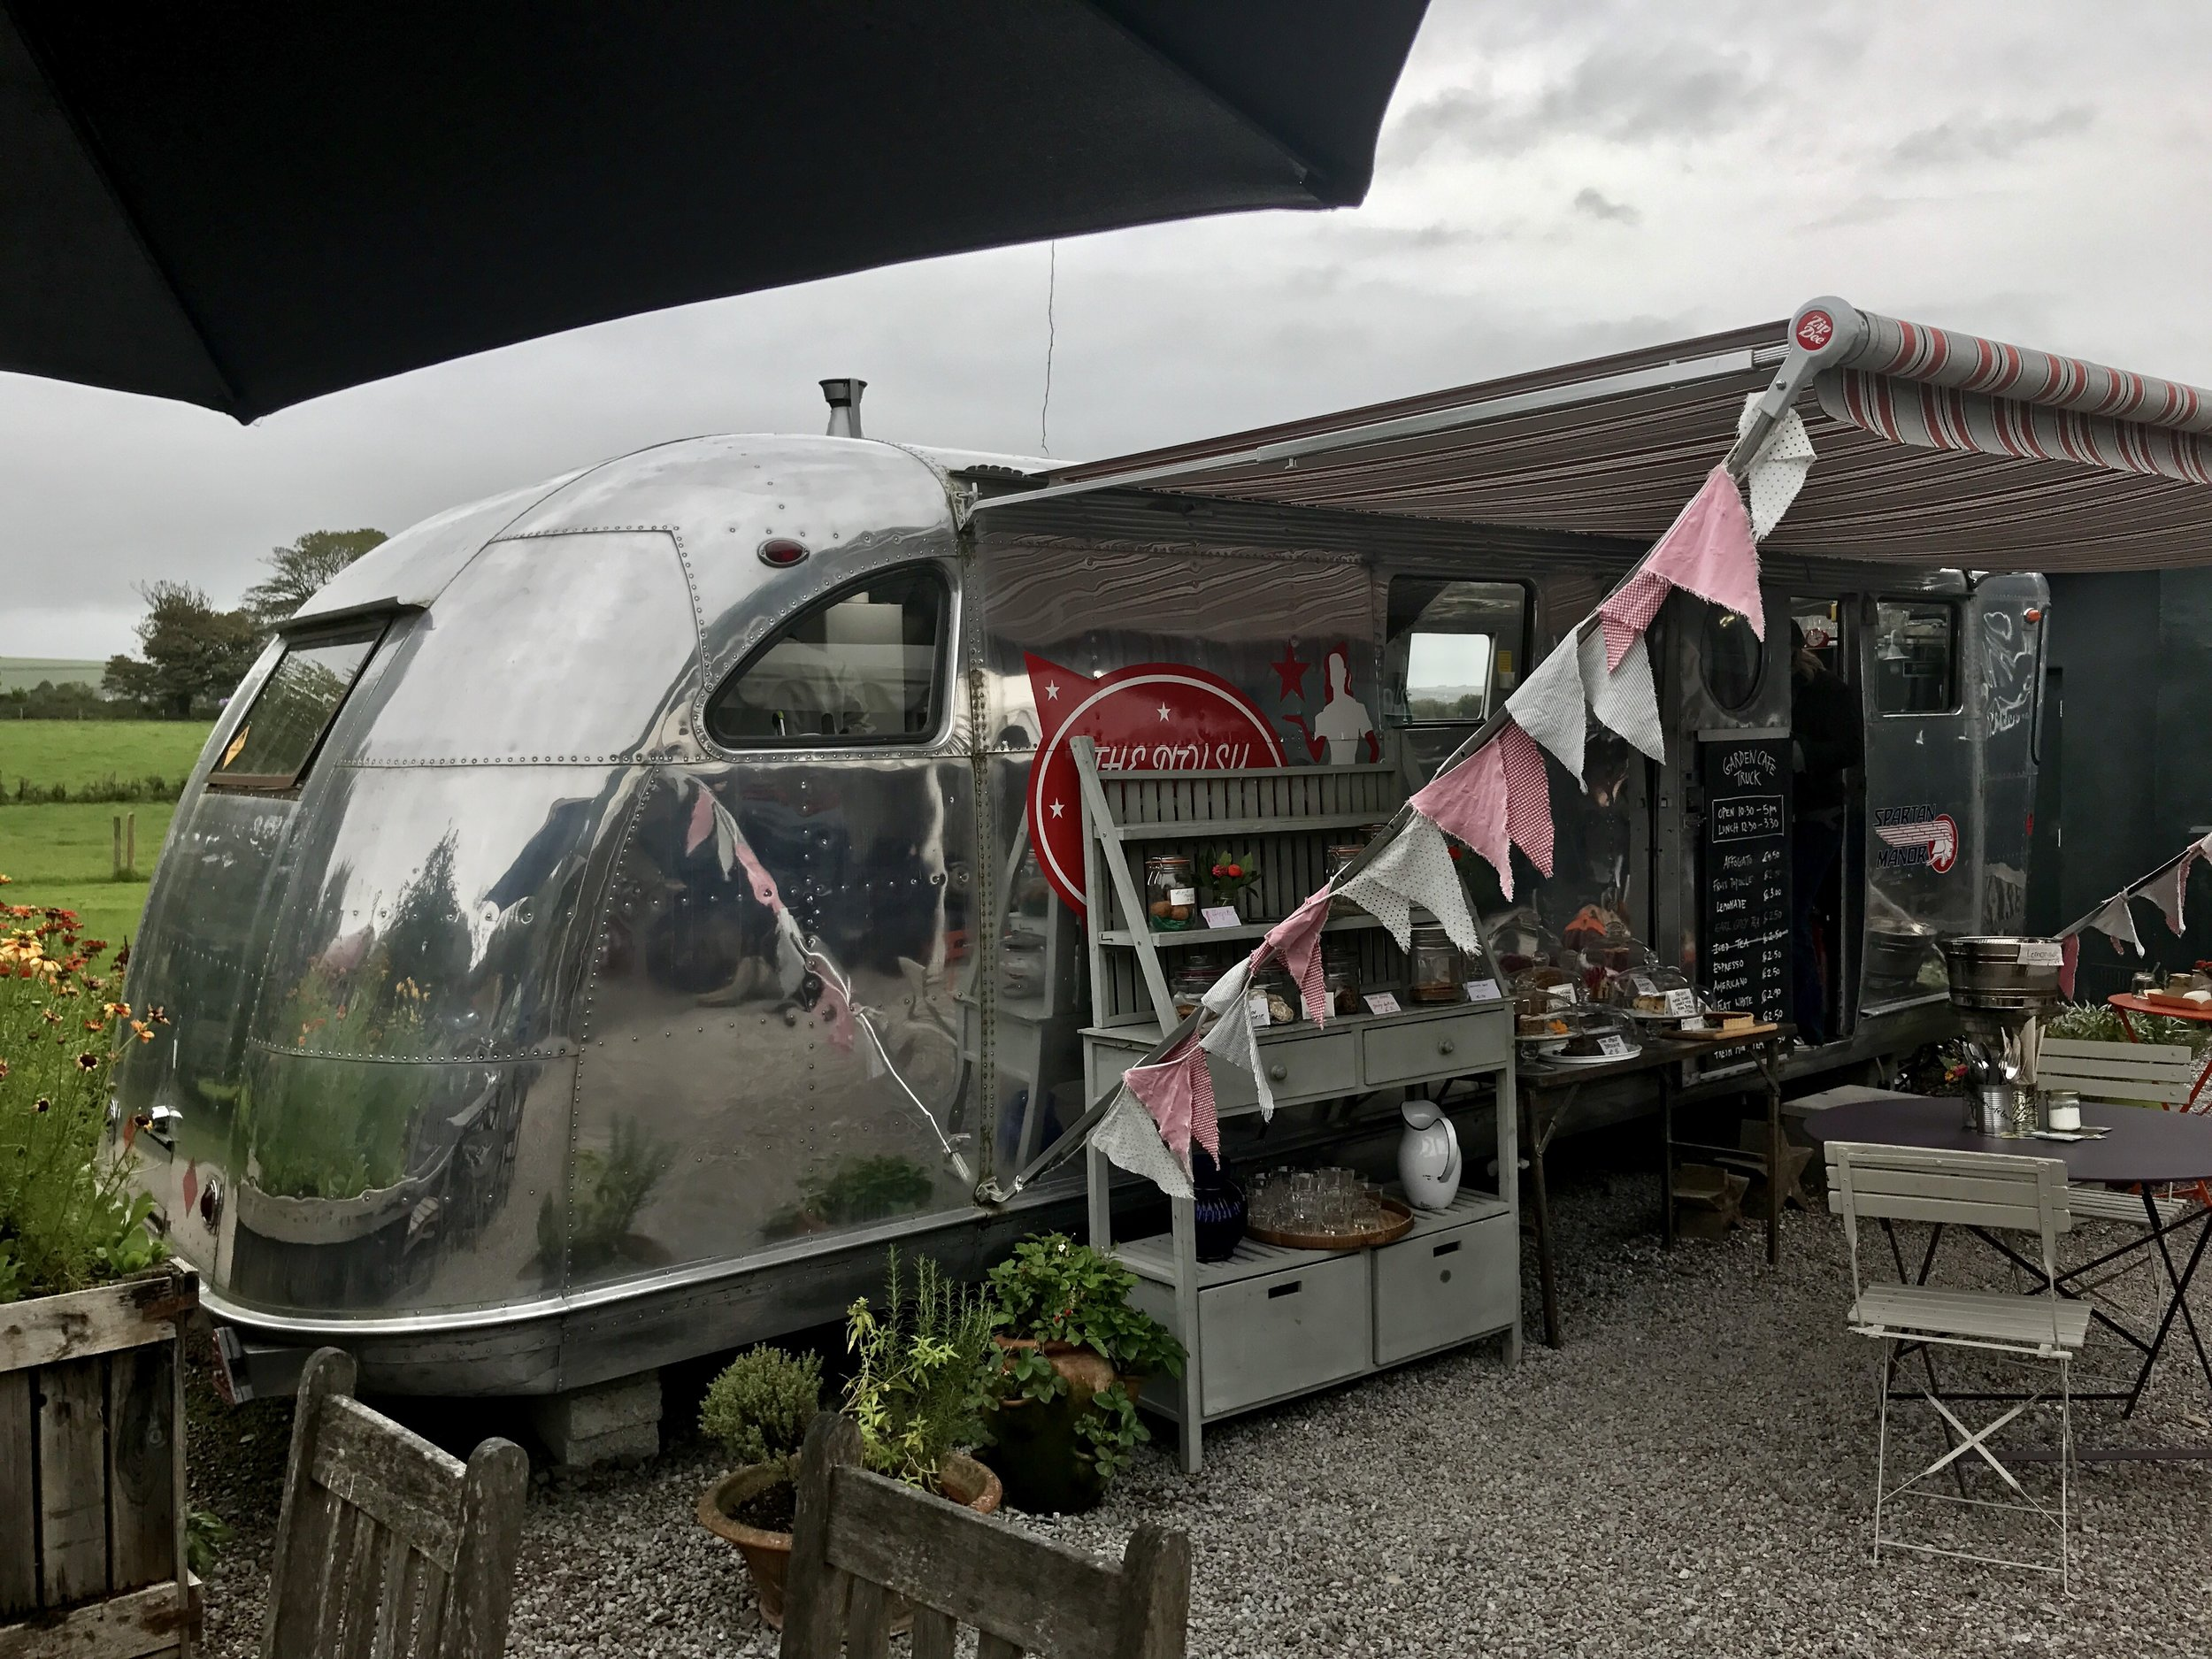 Darina's idea of a food truck and its outdoor café. An old Airstream that has been completely renovated and retrofitted to be a mobile cafe, though they've plumbed it and don't intend to move it. Coolest food truck ever!